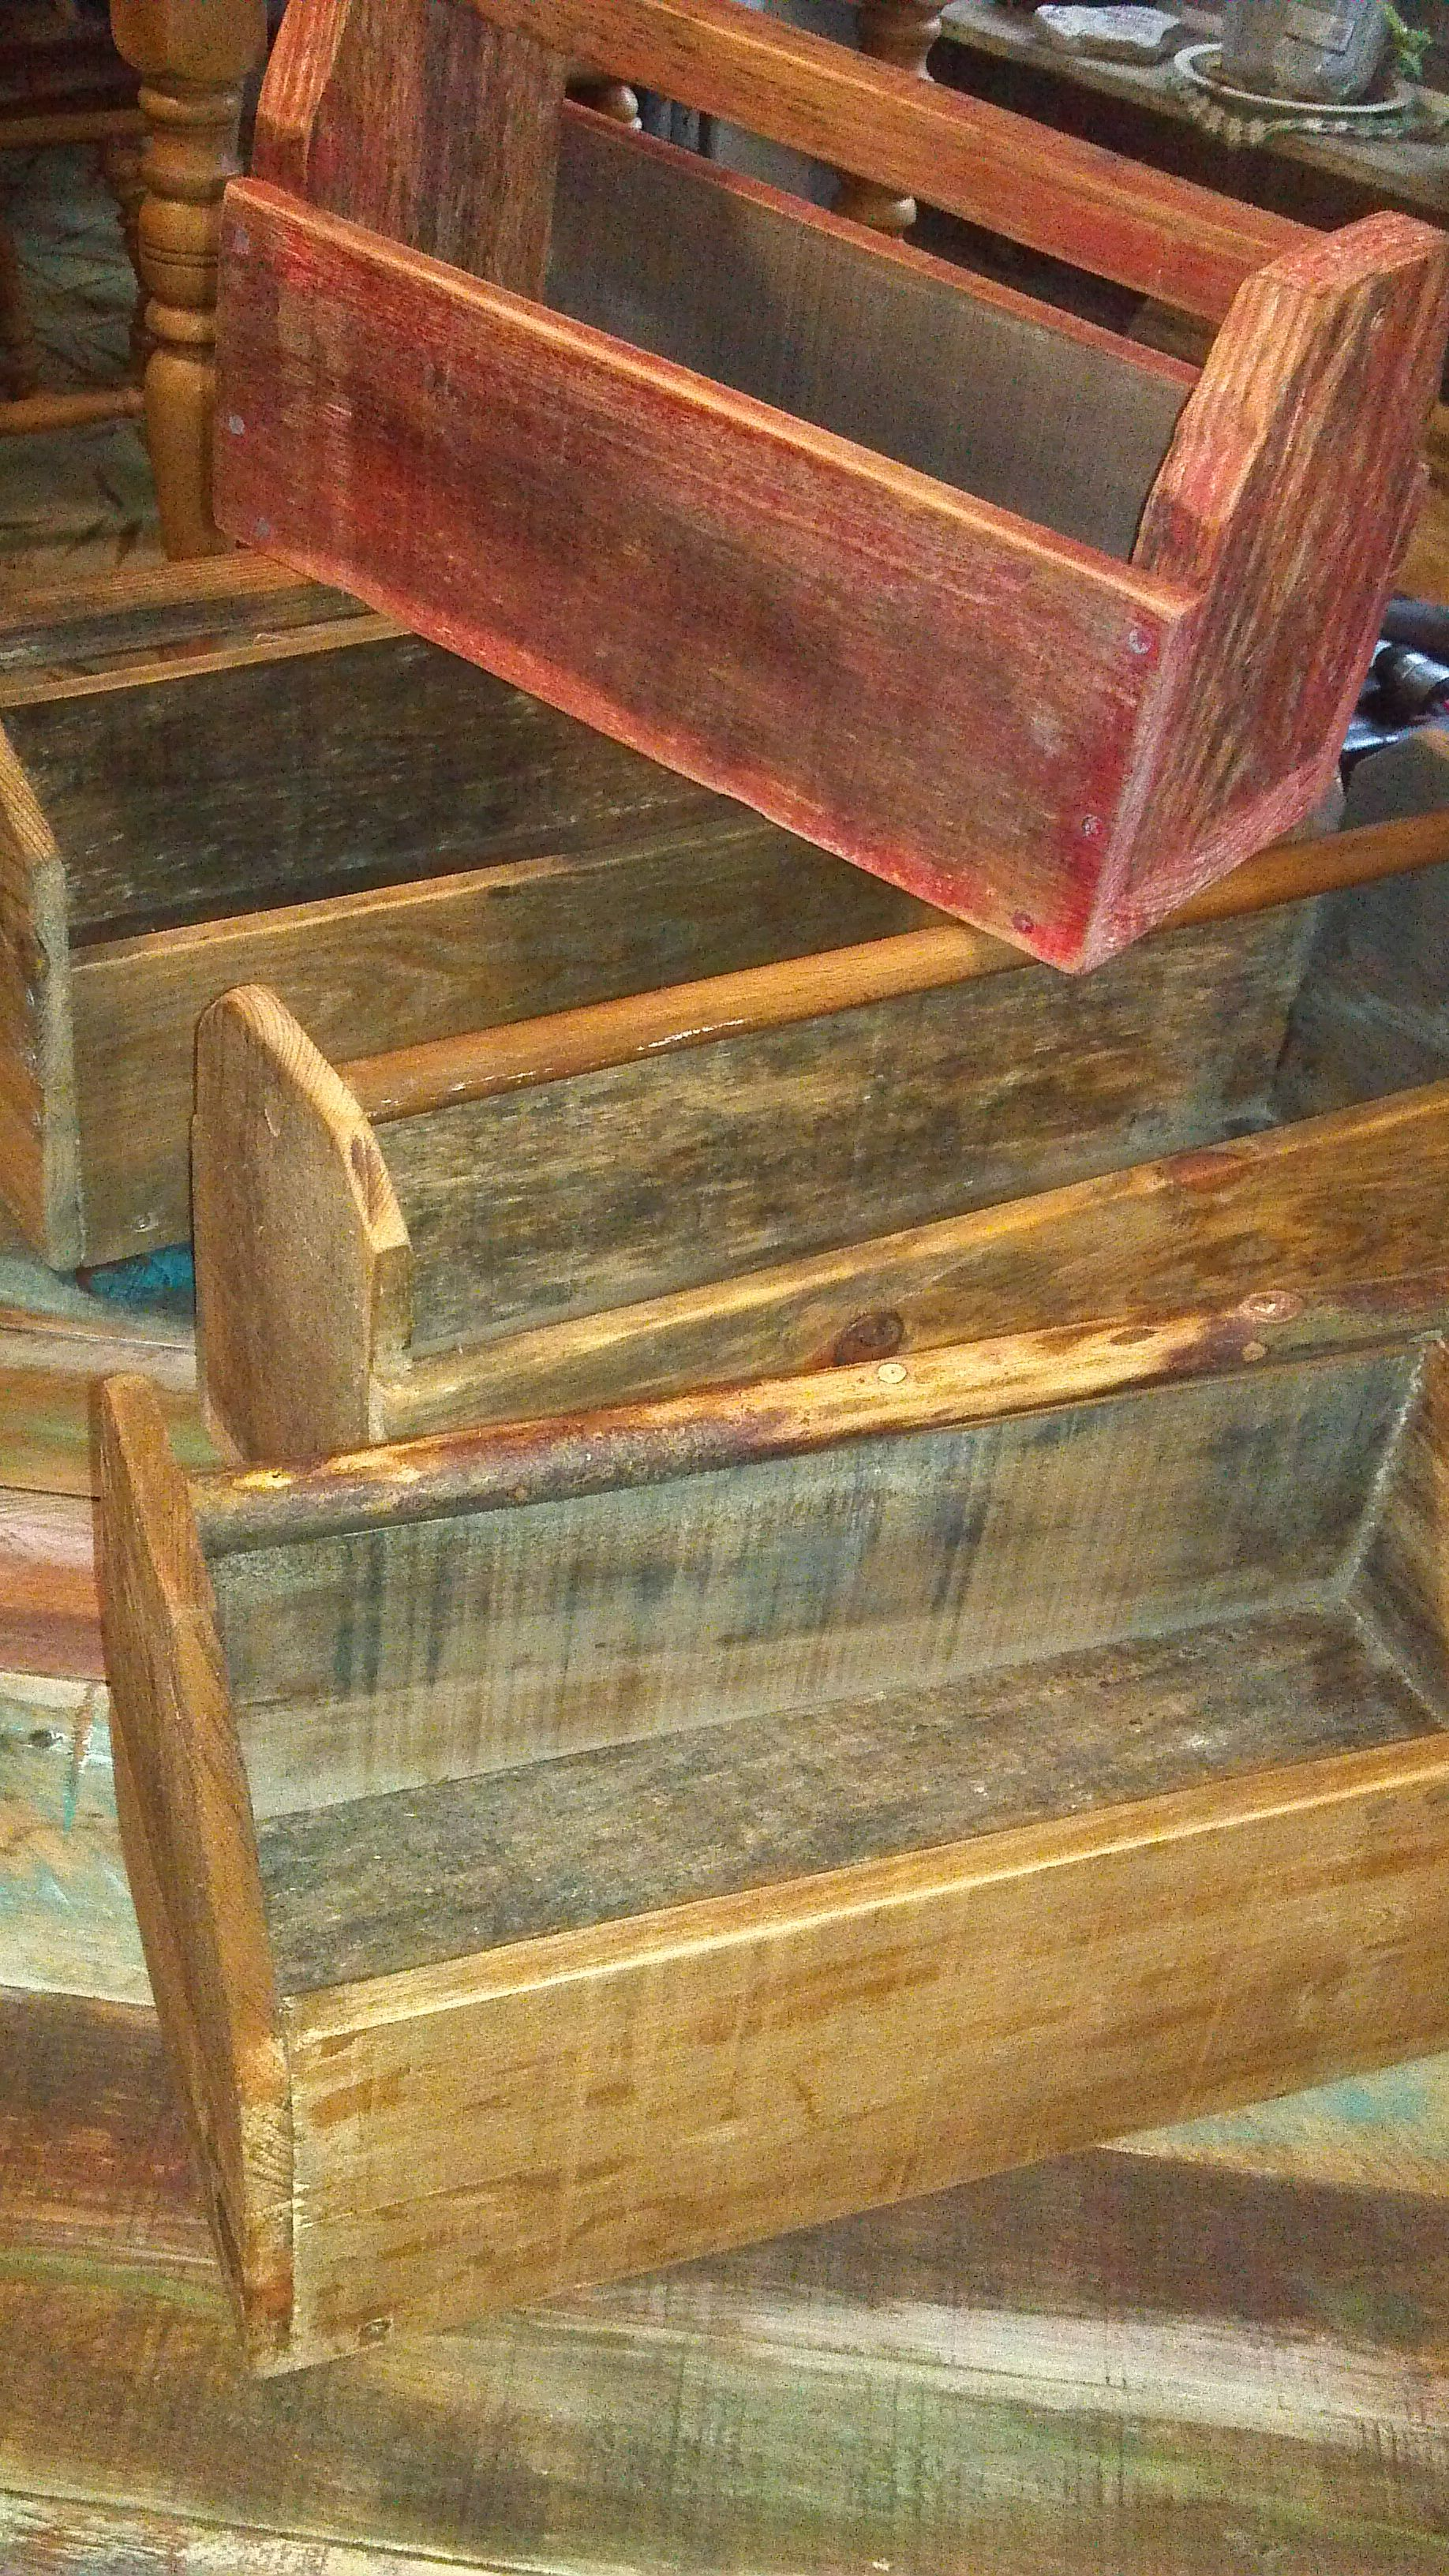 Made With Hardwood Solids With Cherry Veneers And Walnut: All Made With Pallet Wood! Wood Totes!